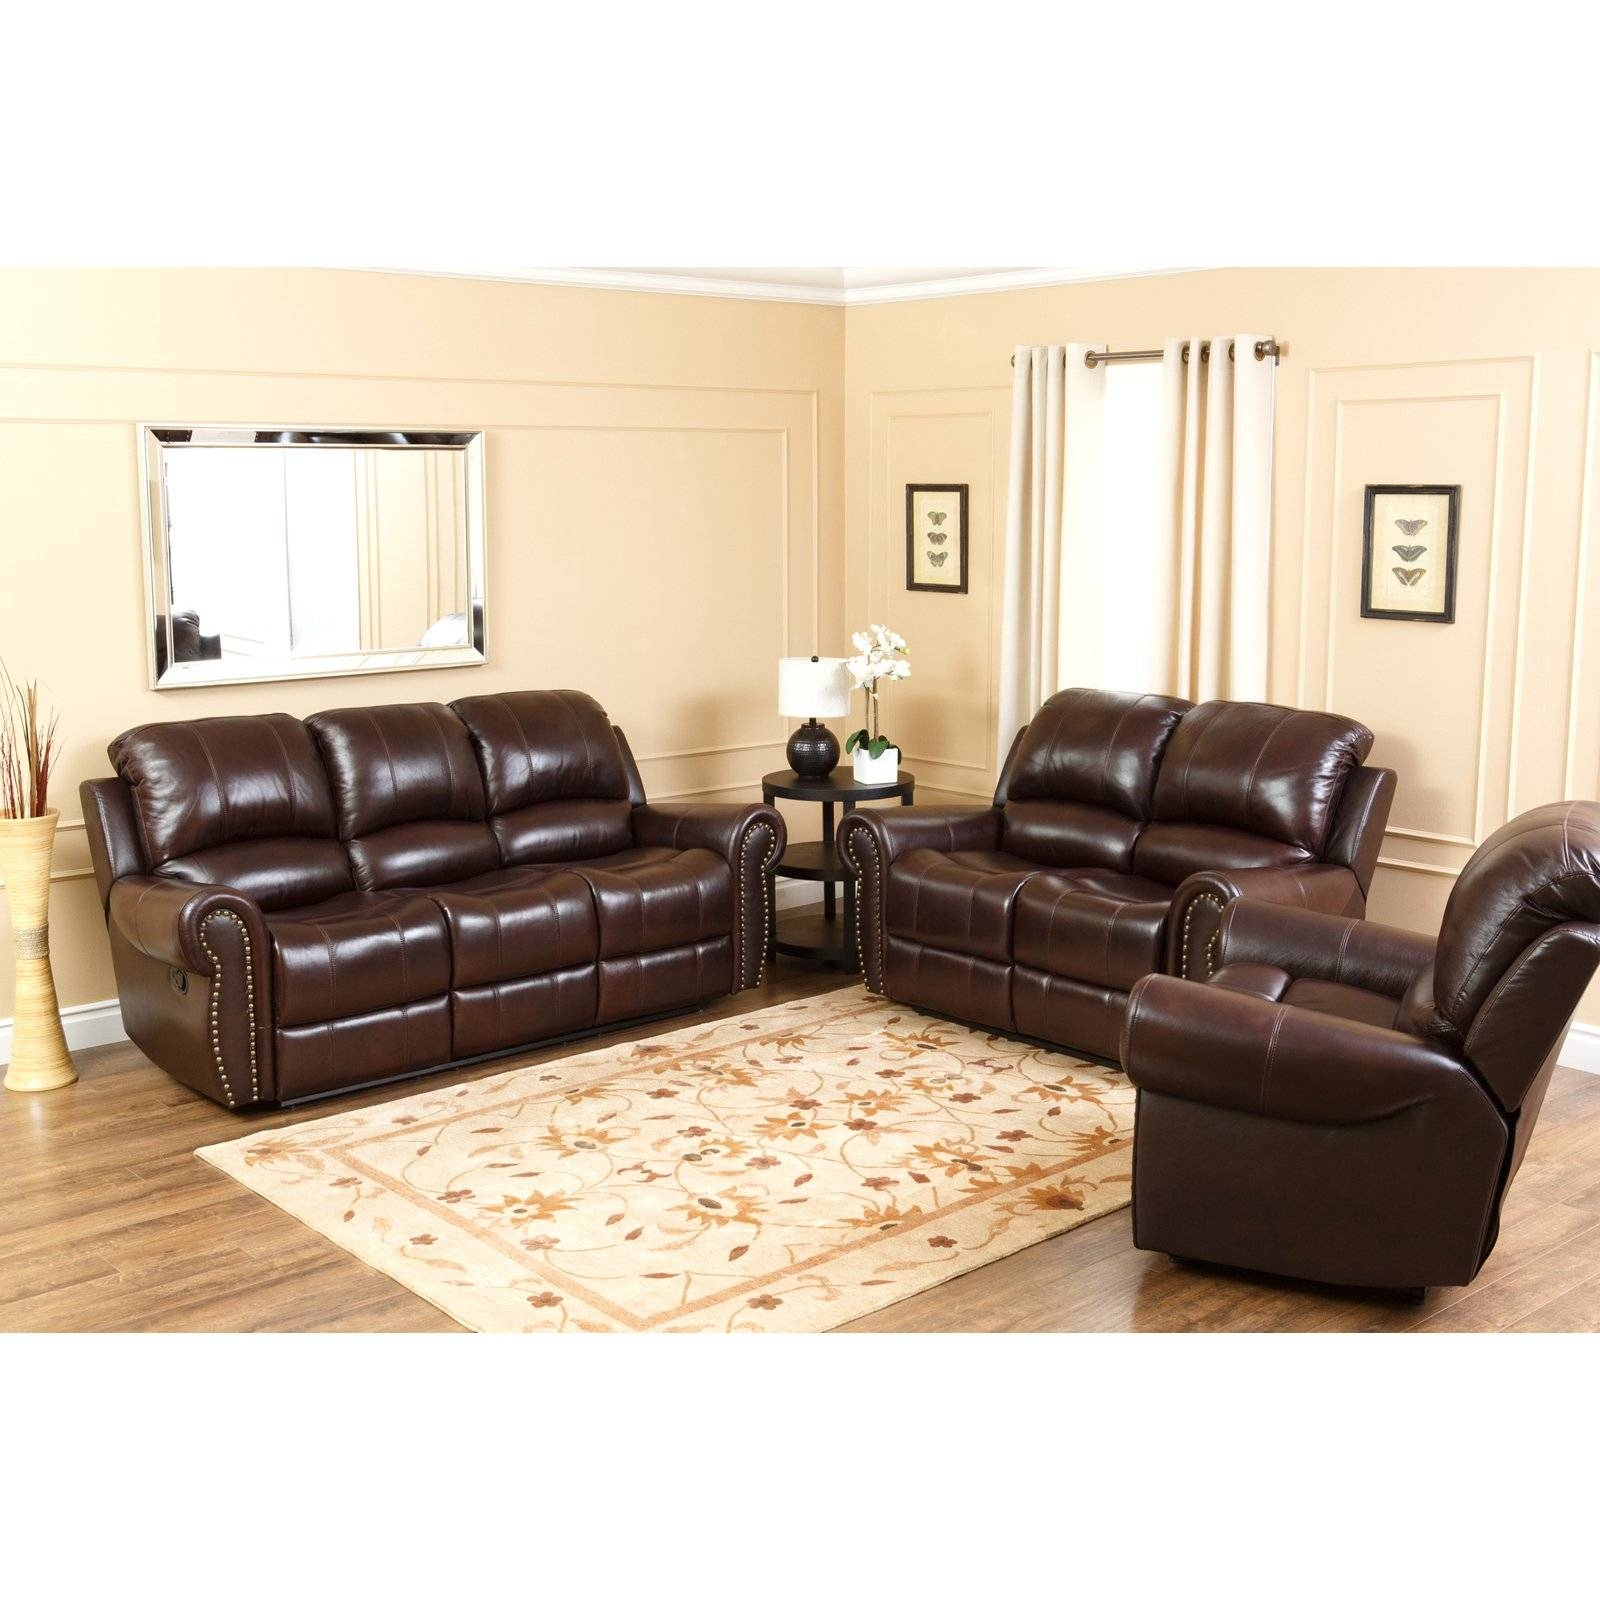 Abbyson Lexington Dark Burgundy Italian Leather Reclining Loveseat intended for Abbyson Sofas (Image 2 of 15)